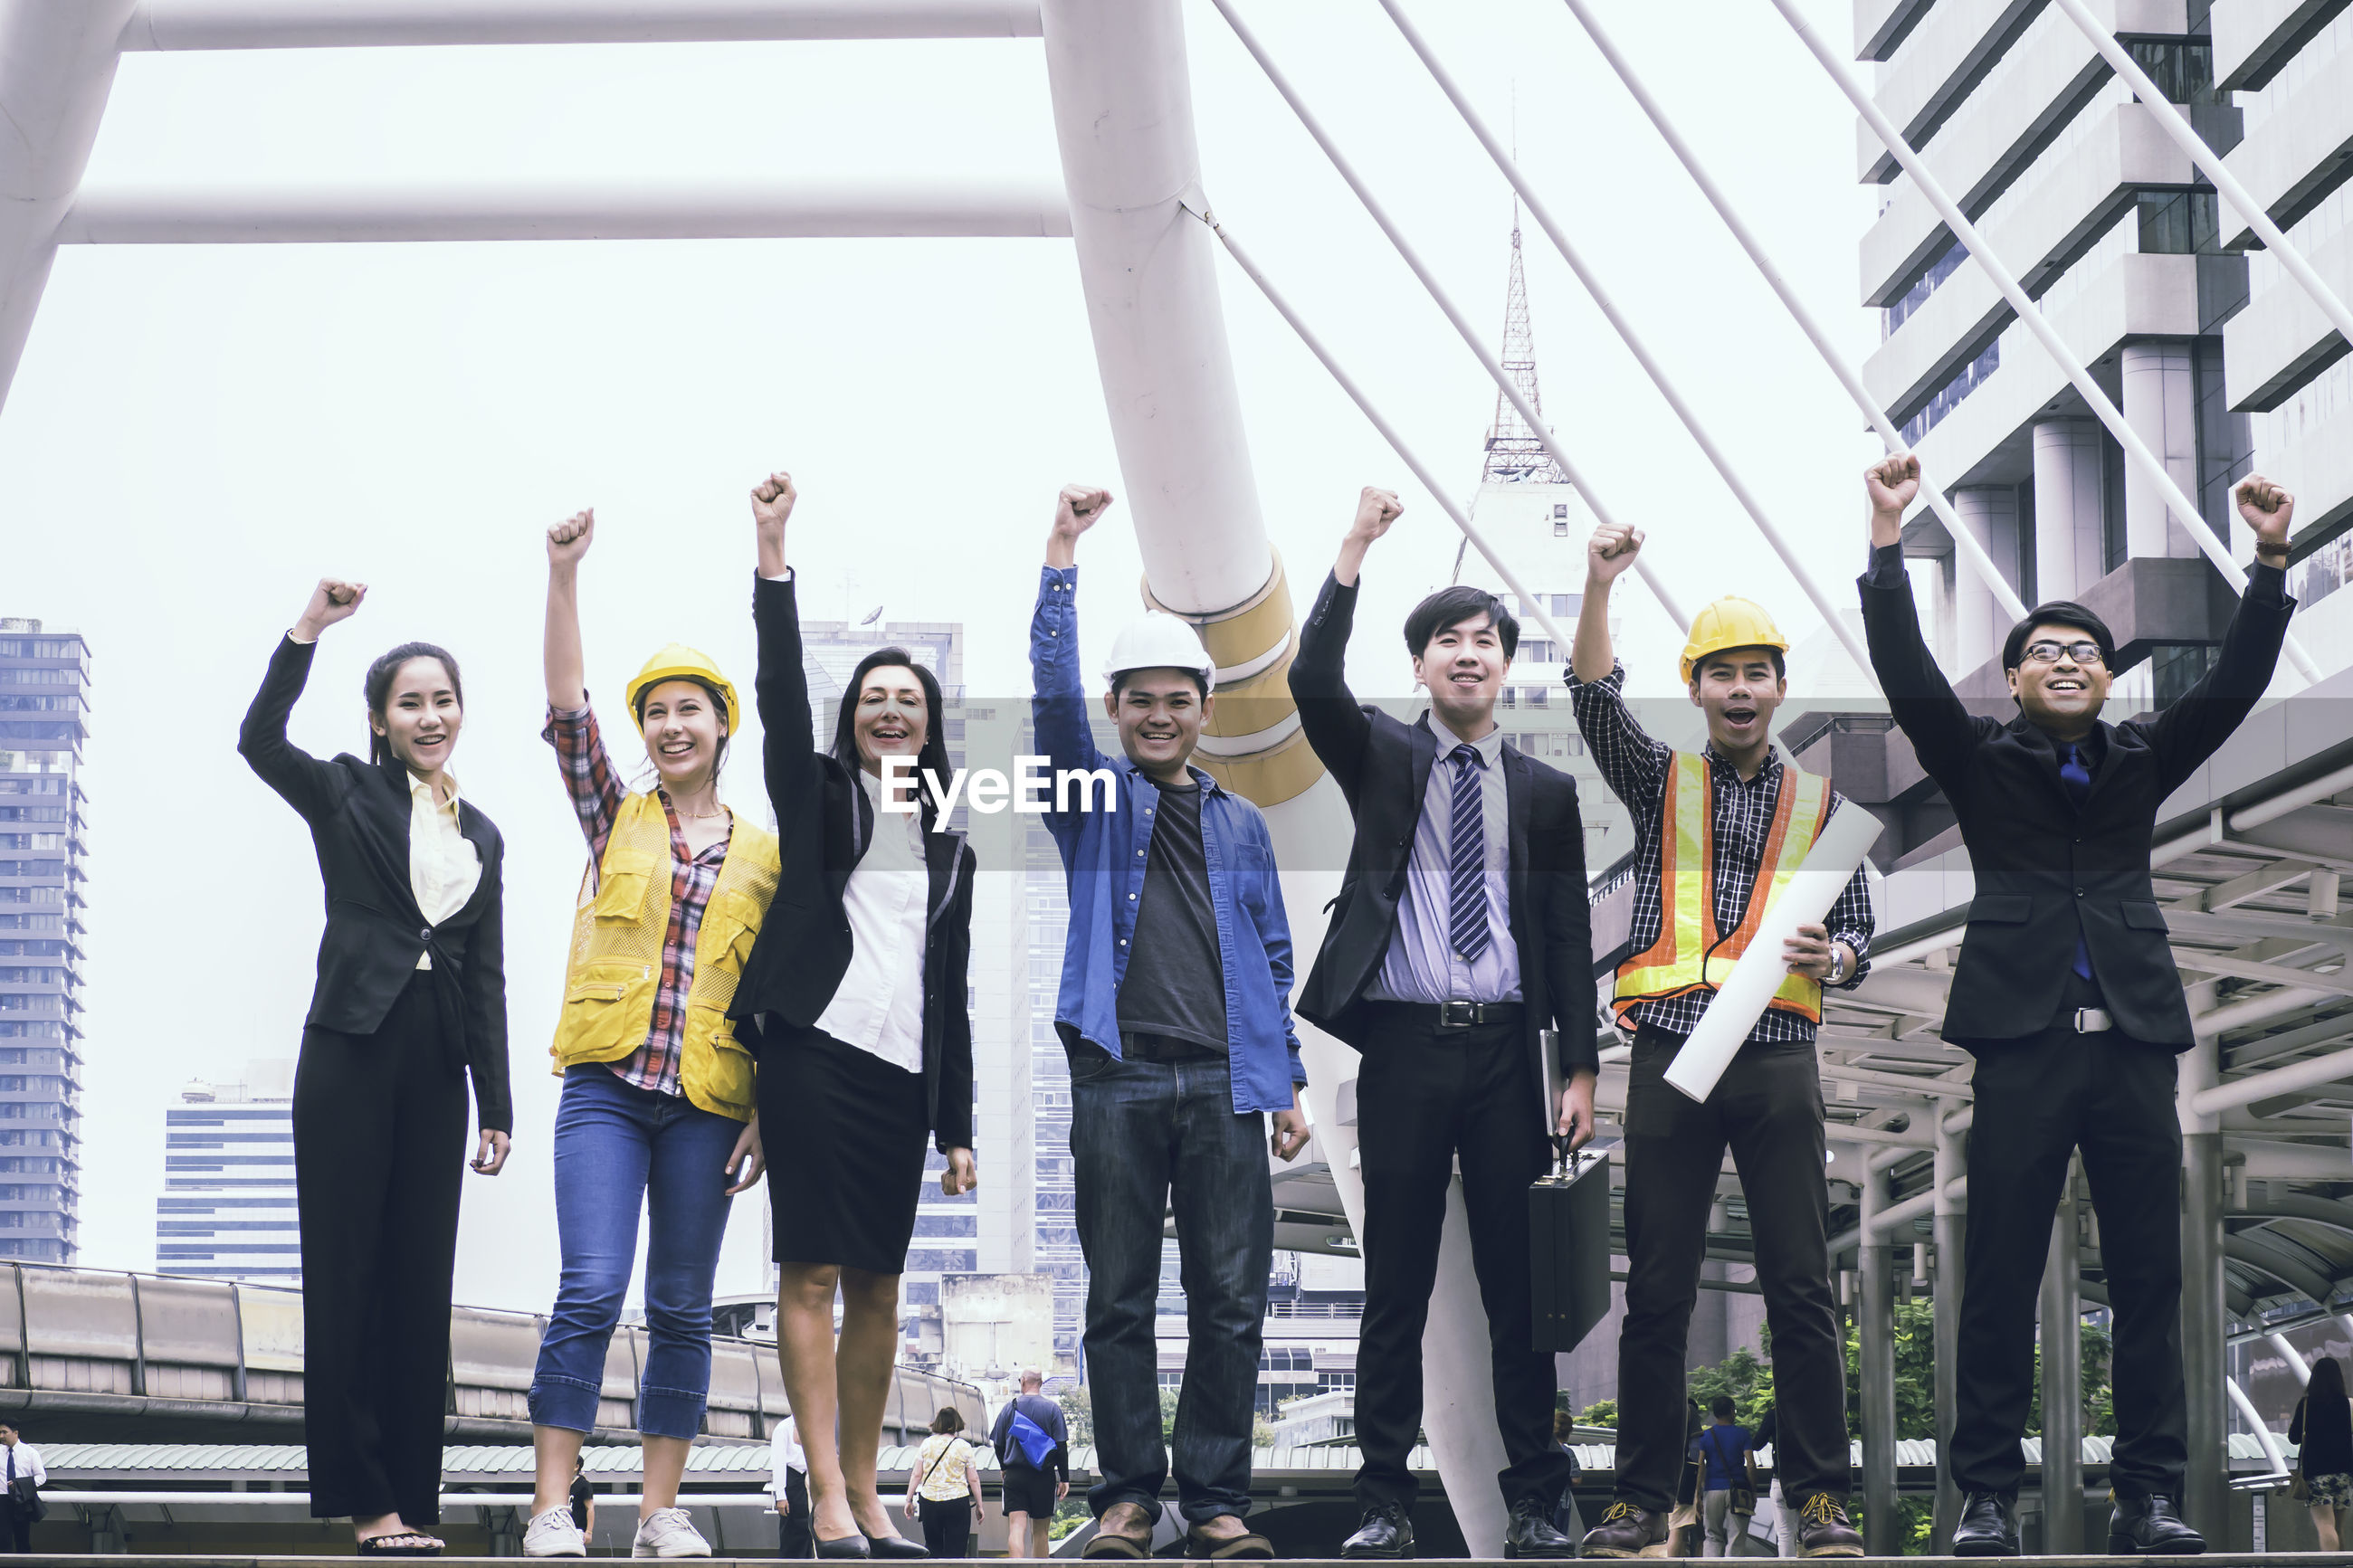 Portrait of engineers and business people with arms raised standing outdoors